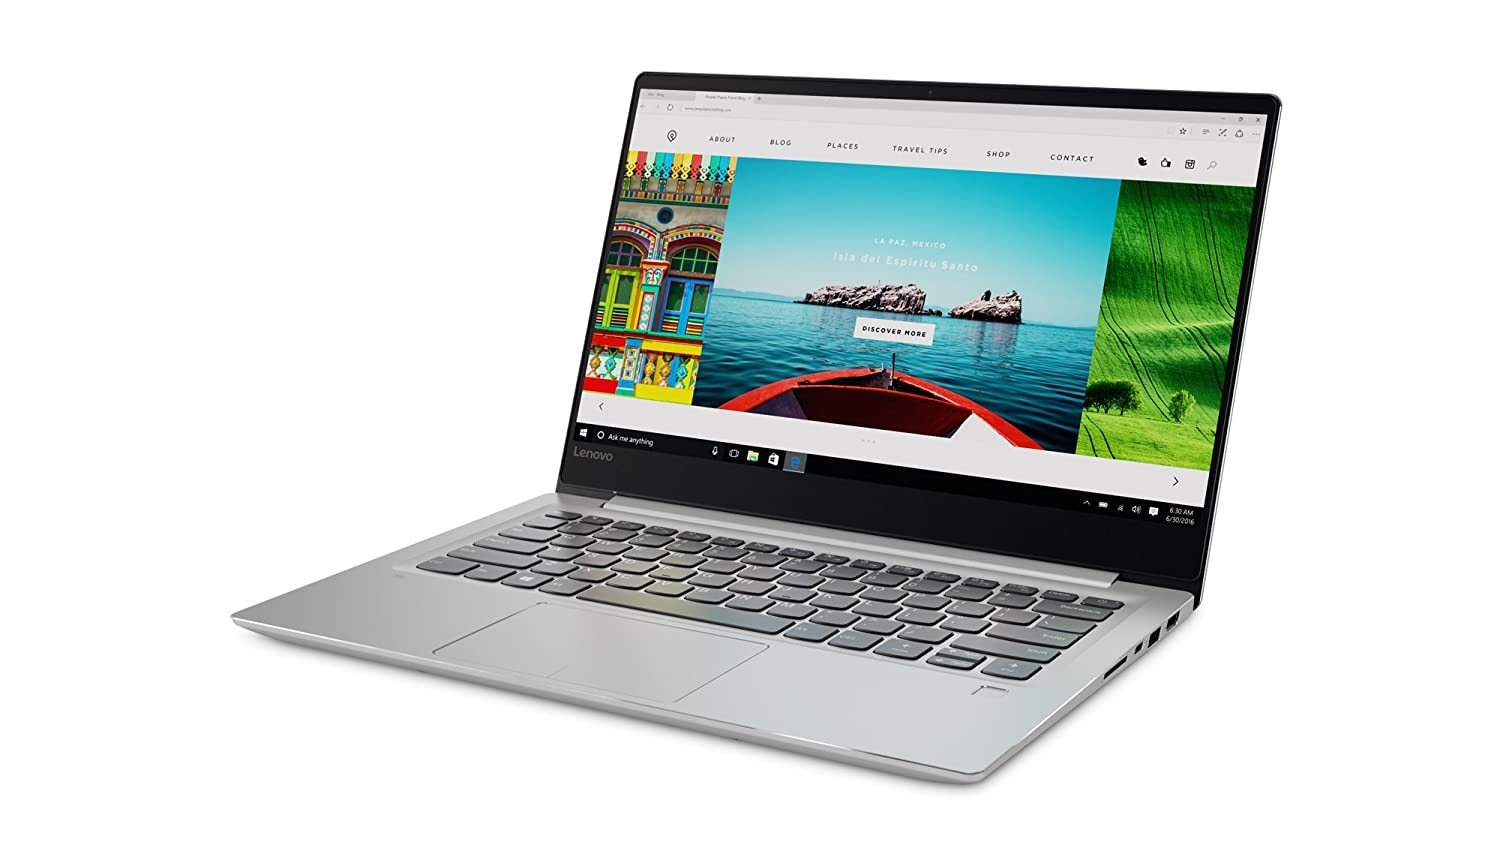 Lenovo portátil IdeaPad 710S Plus de 13ikb, 13,3, Full HD, procesador Intel CoreTM i7 - 7500u (2,70 GHz), Windows, Gris: Amazon.es: Informática